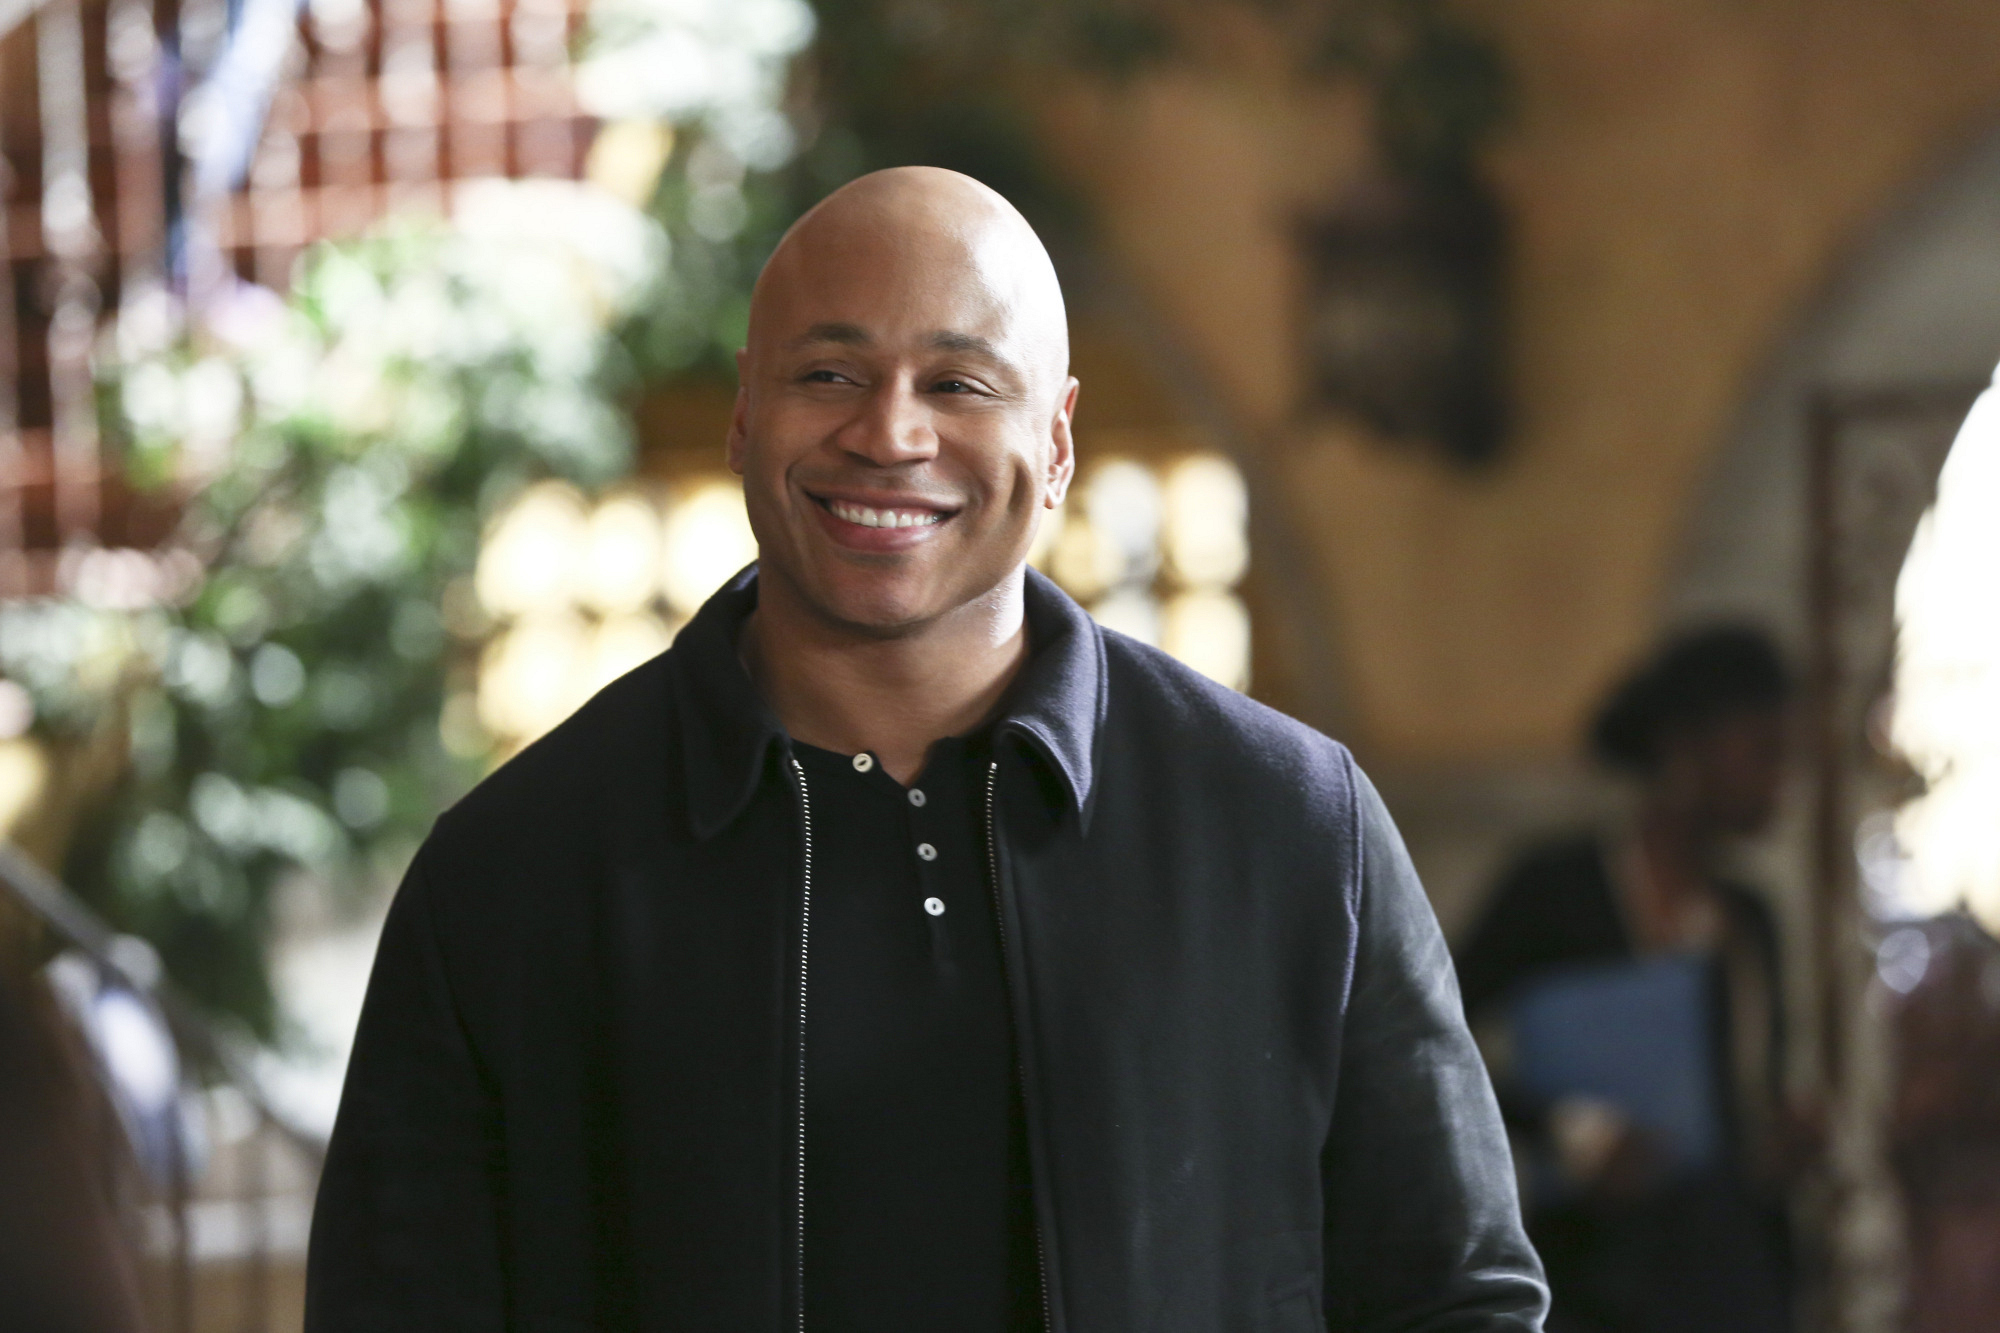 2. Sam Hanna - NCIS: Los Angeles